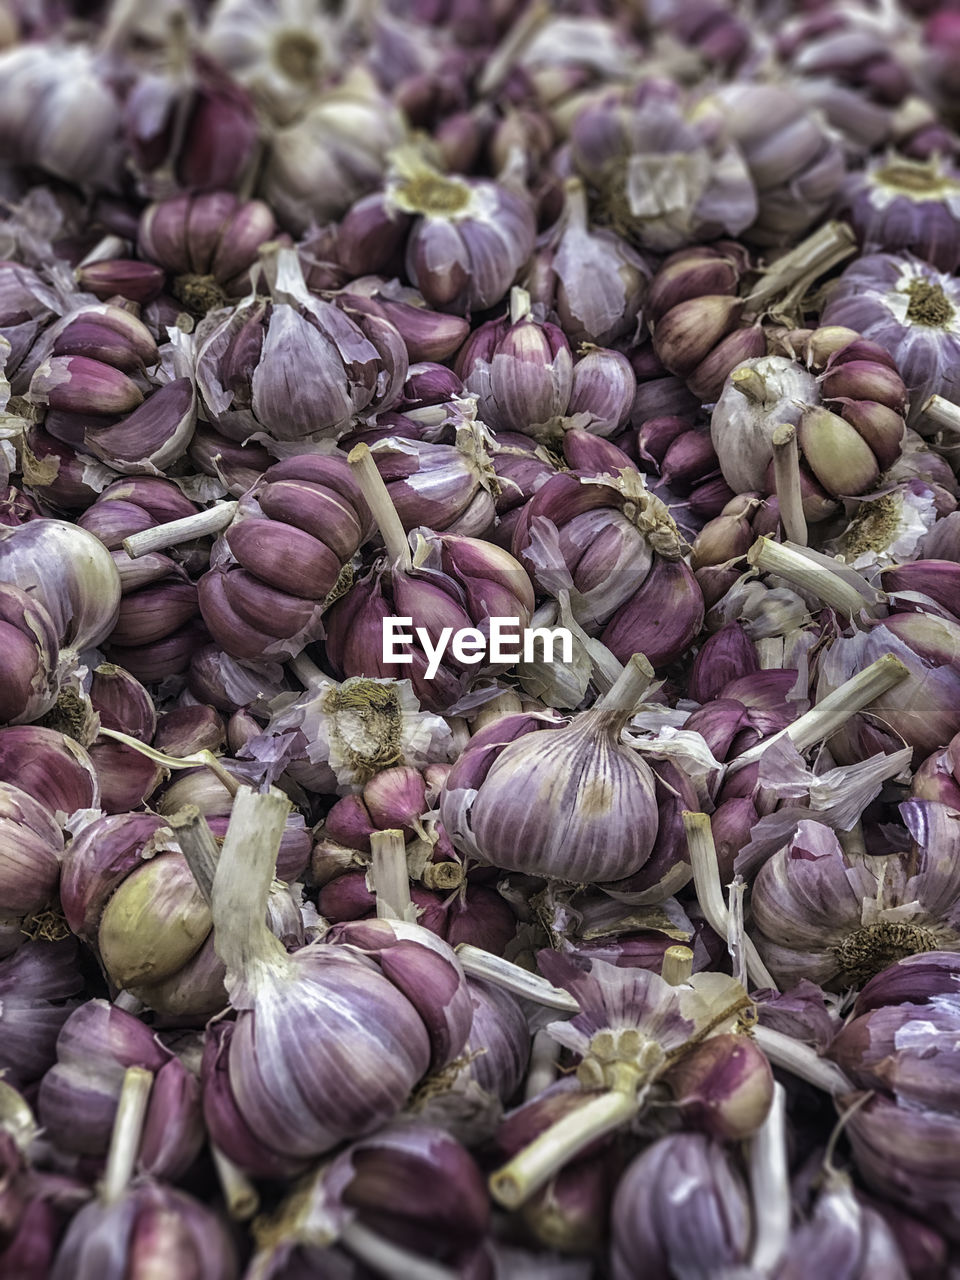 food and drink, freshness, food, vegetable, market, wellbeing, healthy eating, backgrounds, full frame, for sale, abundance, large group of objects, retail, no people, ingredient, raw food, close-up, market stall, purple, spice, retail display, garlic clove